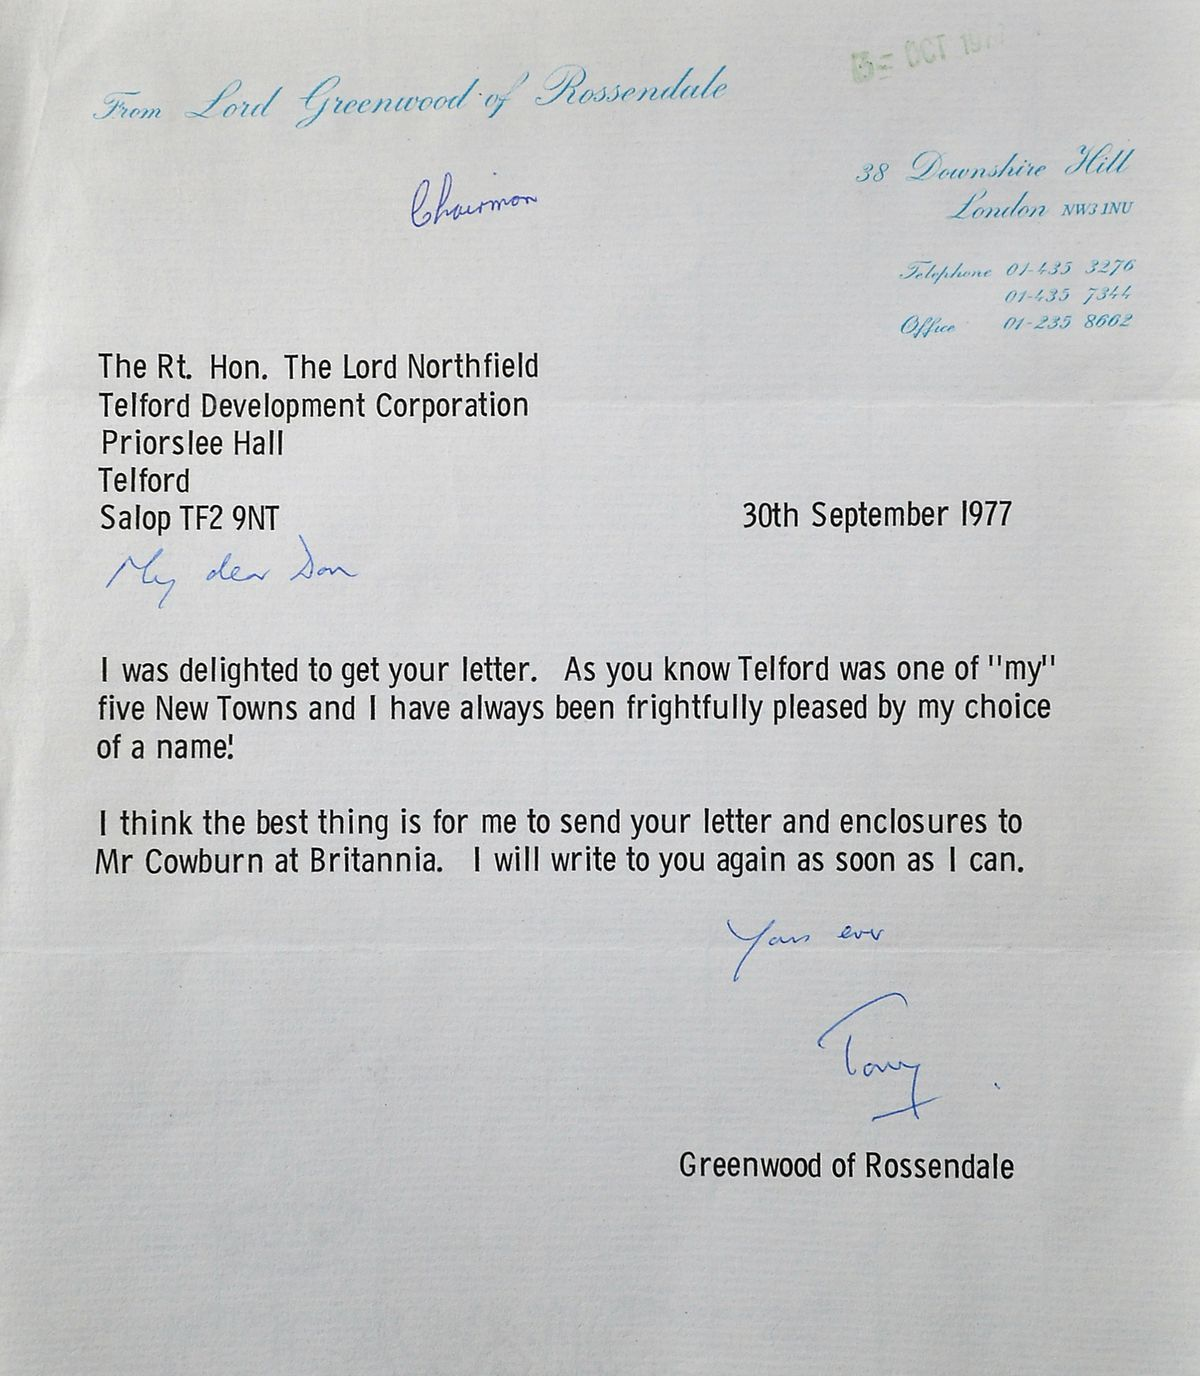 This letter found in a Shropshire attic confirms Tony Greenwood as the minister who came up with the Telford name.